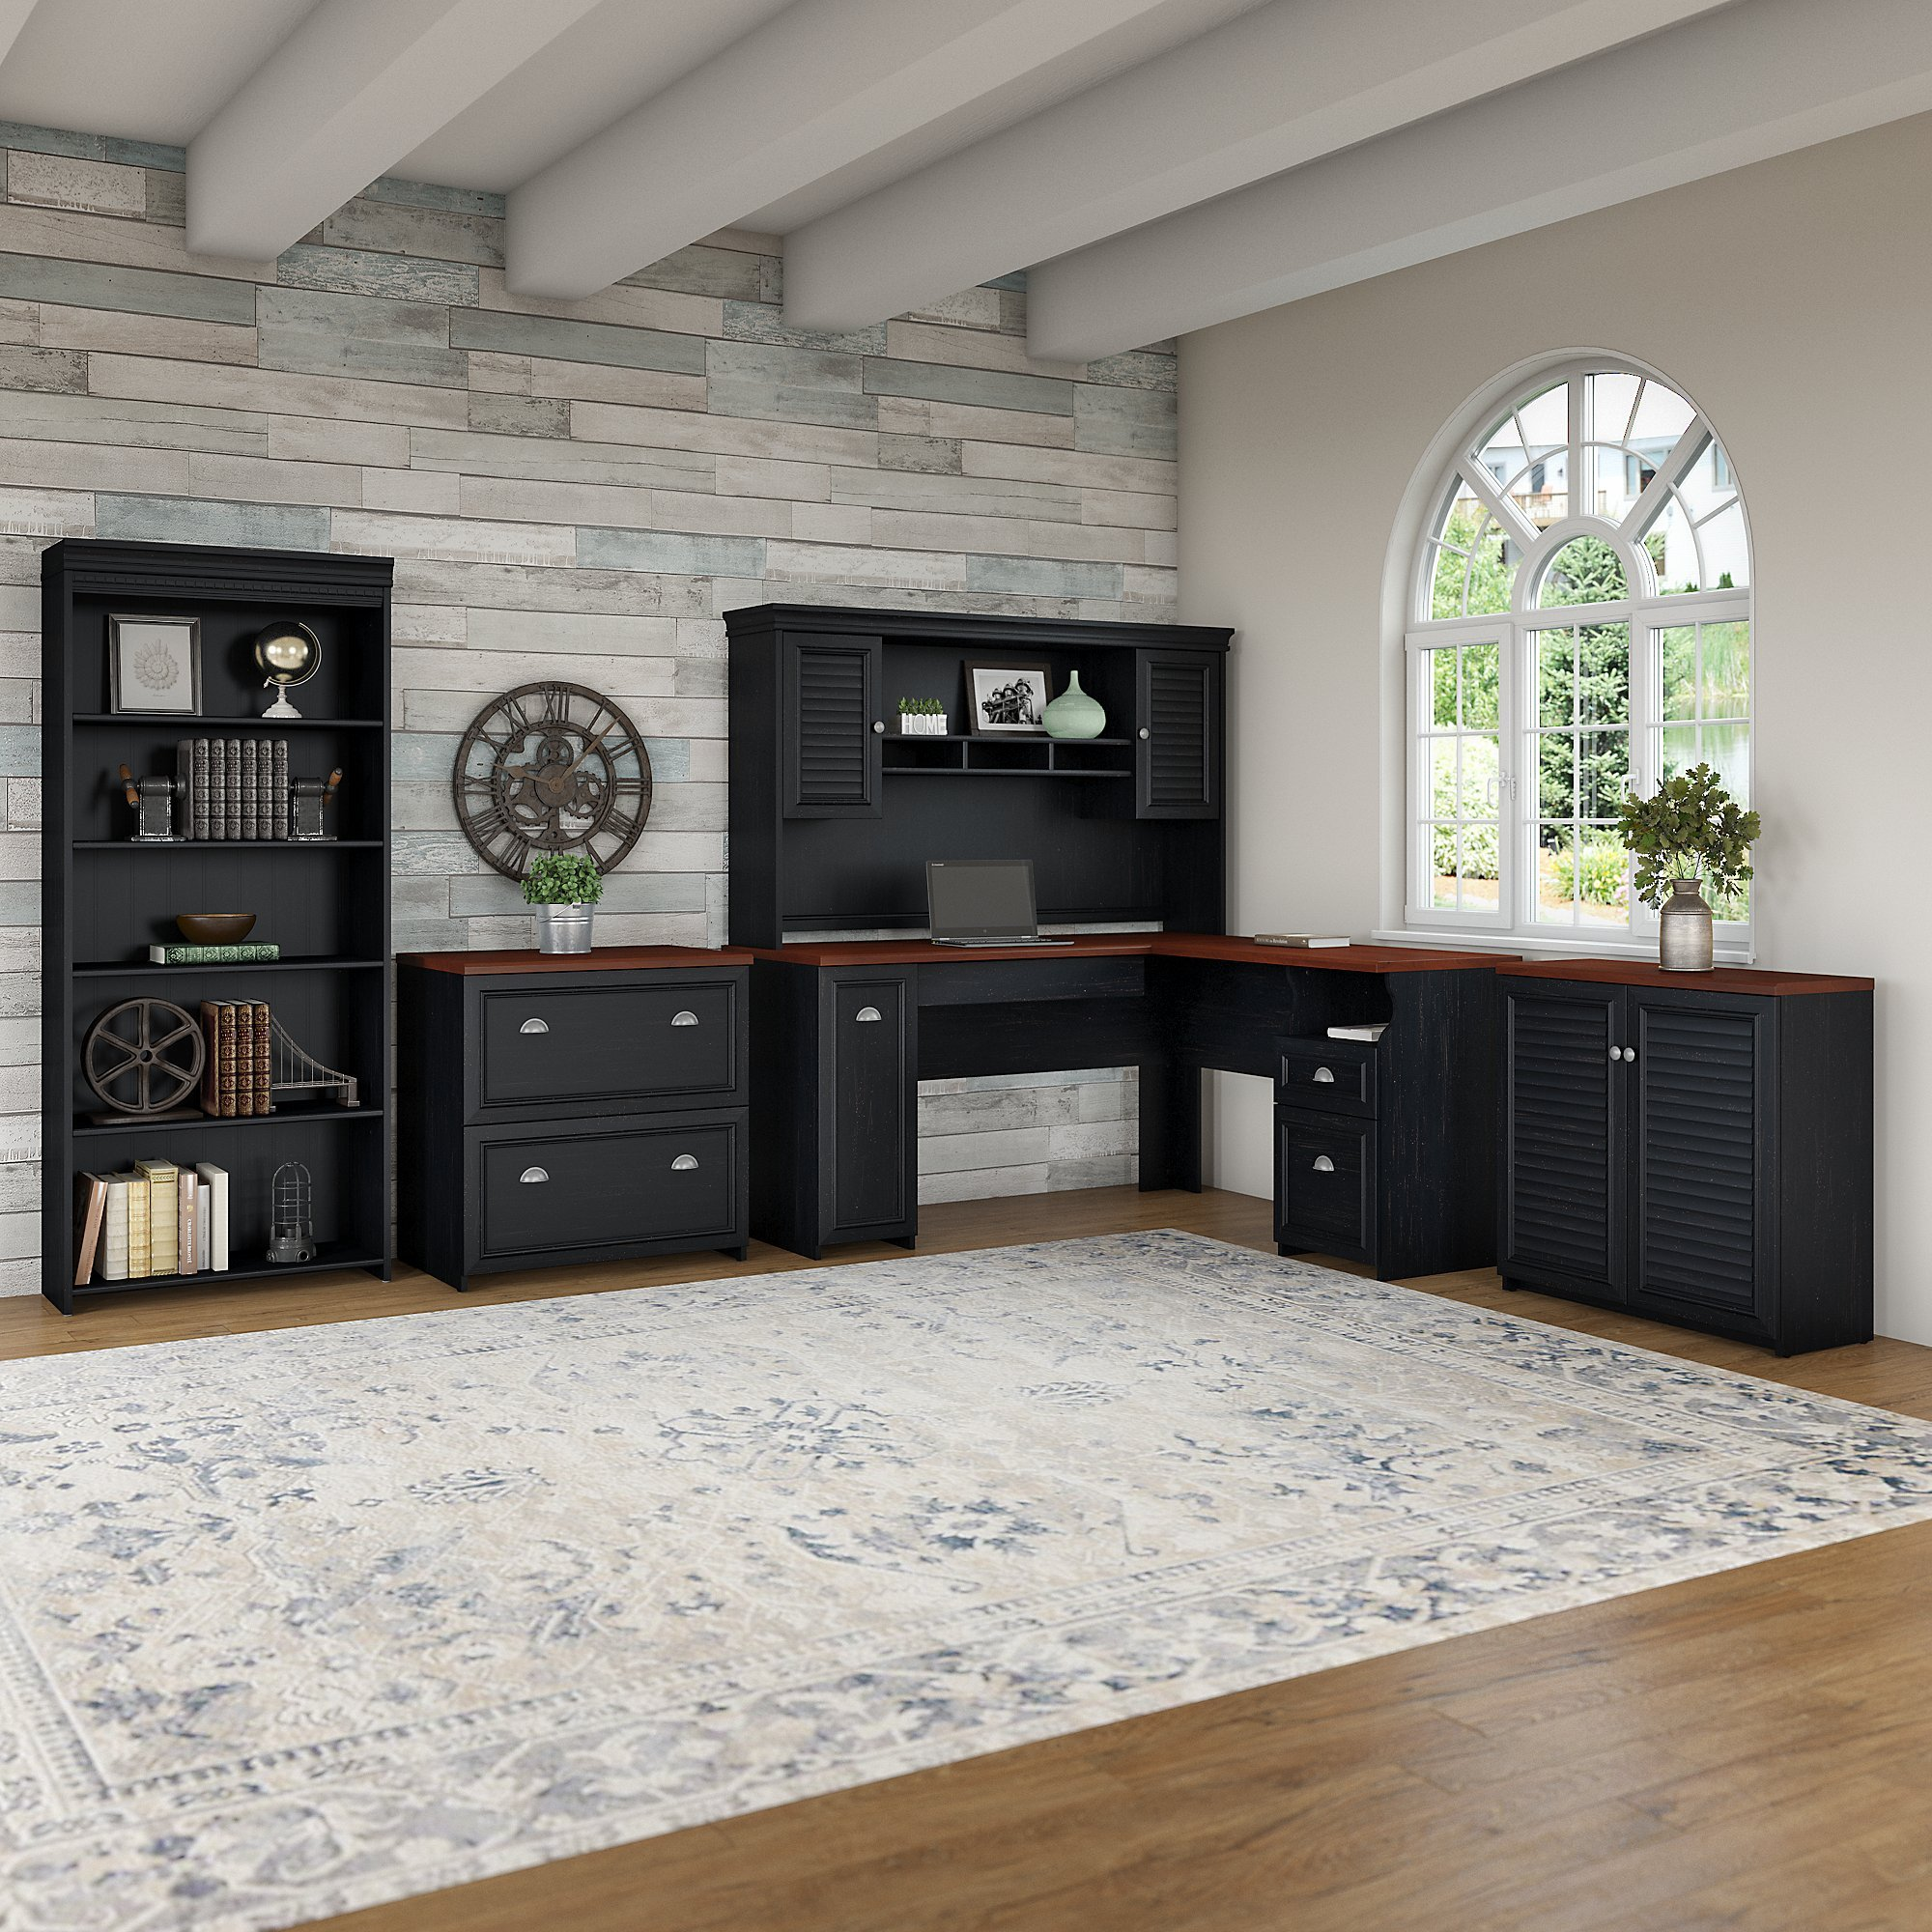 Bush Furniture Fairview 60W L Shaped Desk with Hutch, Storage Cabinets and 5 Shelf Bookcase in Antique Black and Hansen Cherry by Bush Furniture (Image #2)